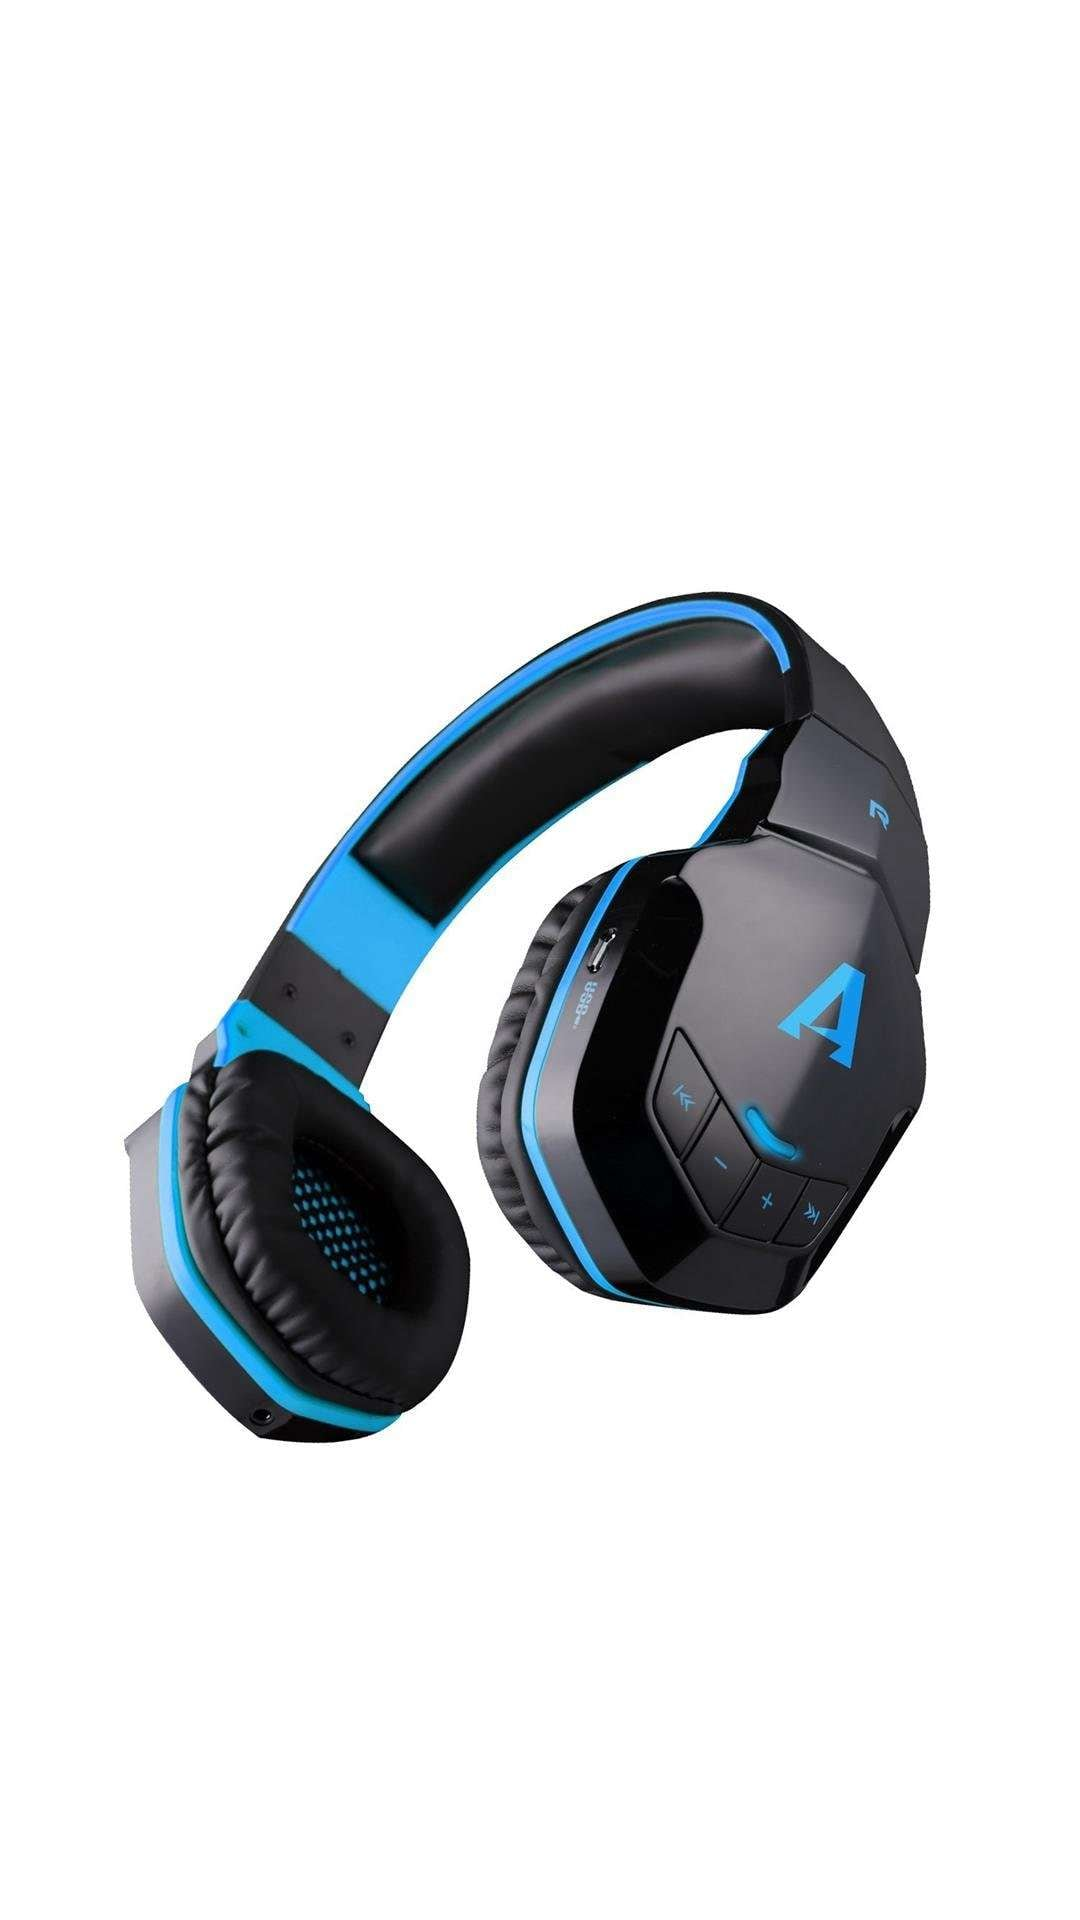 Buy Boat Rockerz 510 Super Extra Bass Over Ear Bluetooth Headphones With Mic Jazzy Blue Features Price Reviews Online In India Justdial